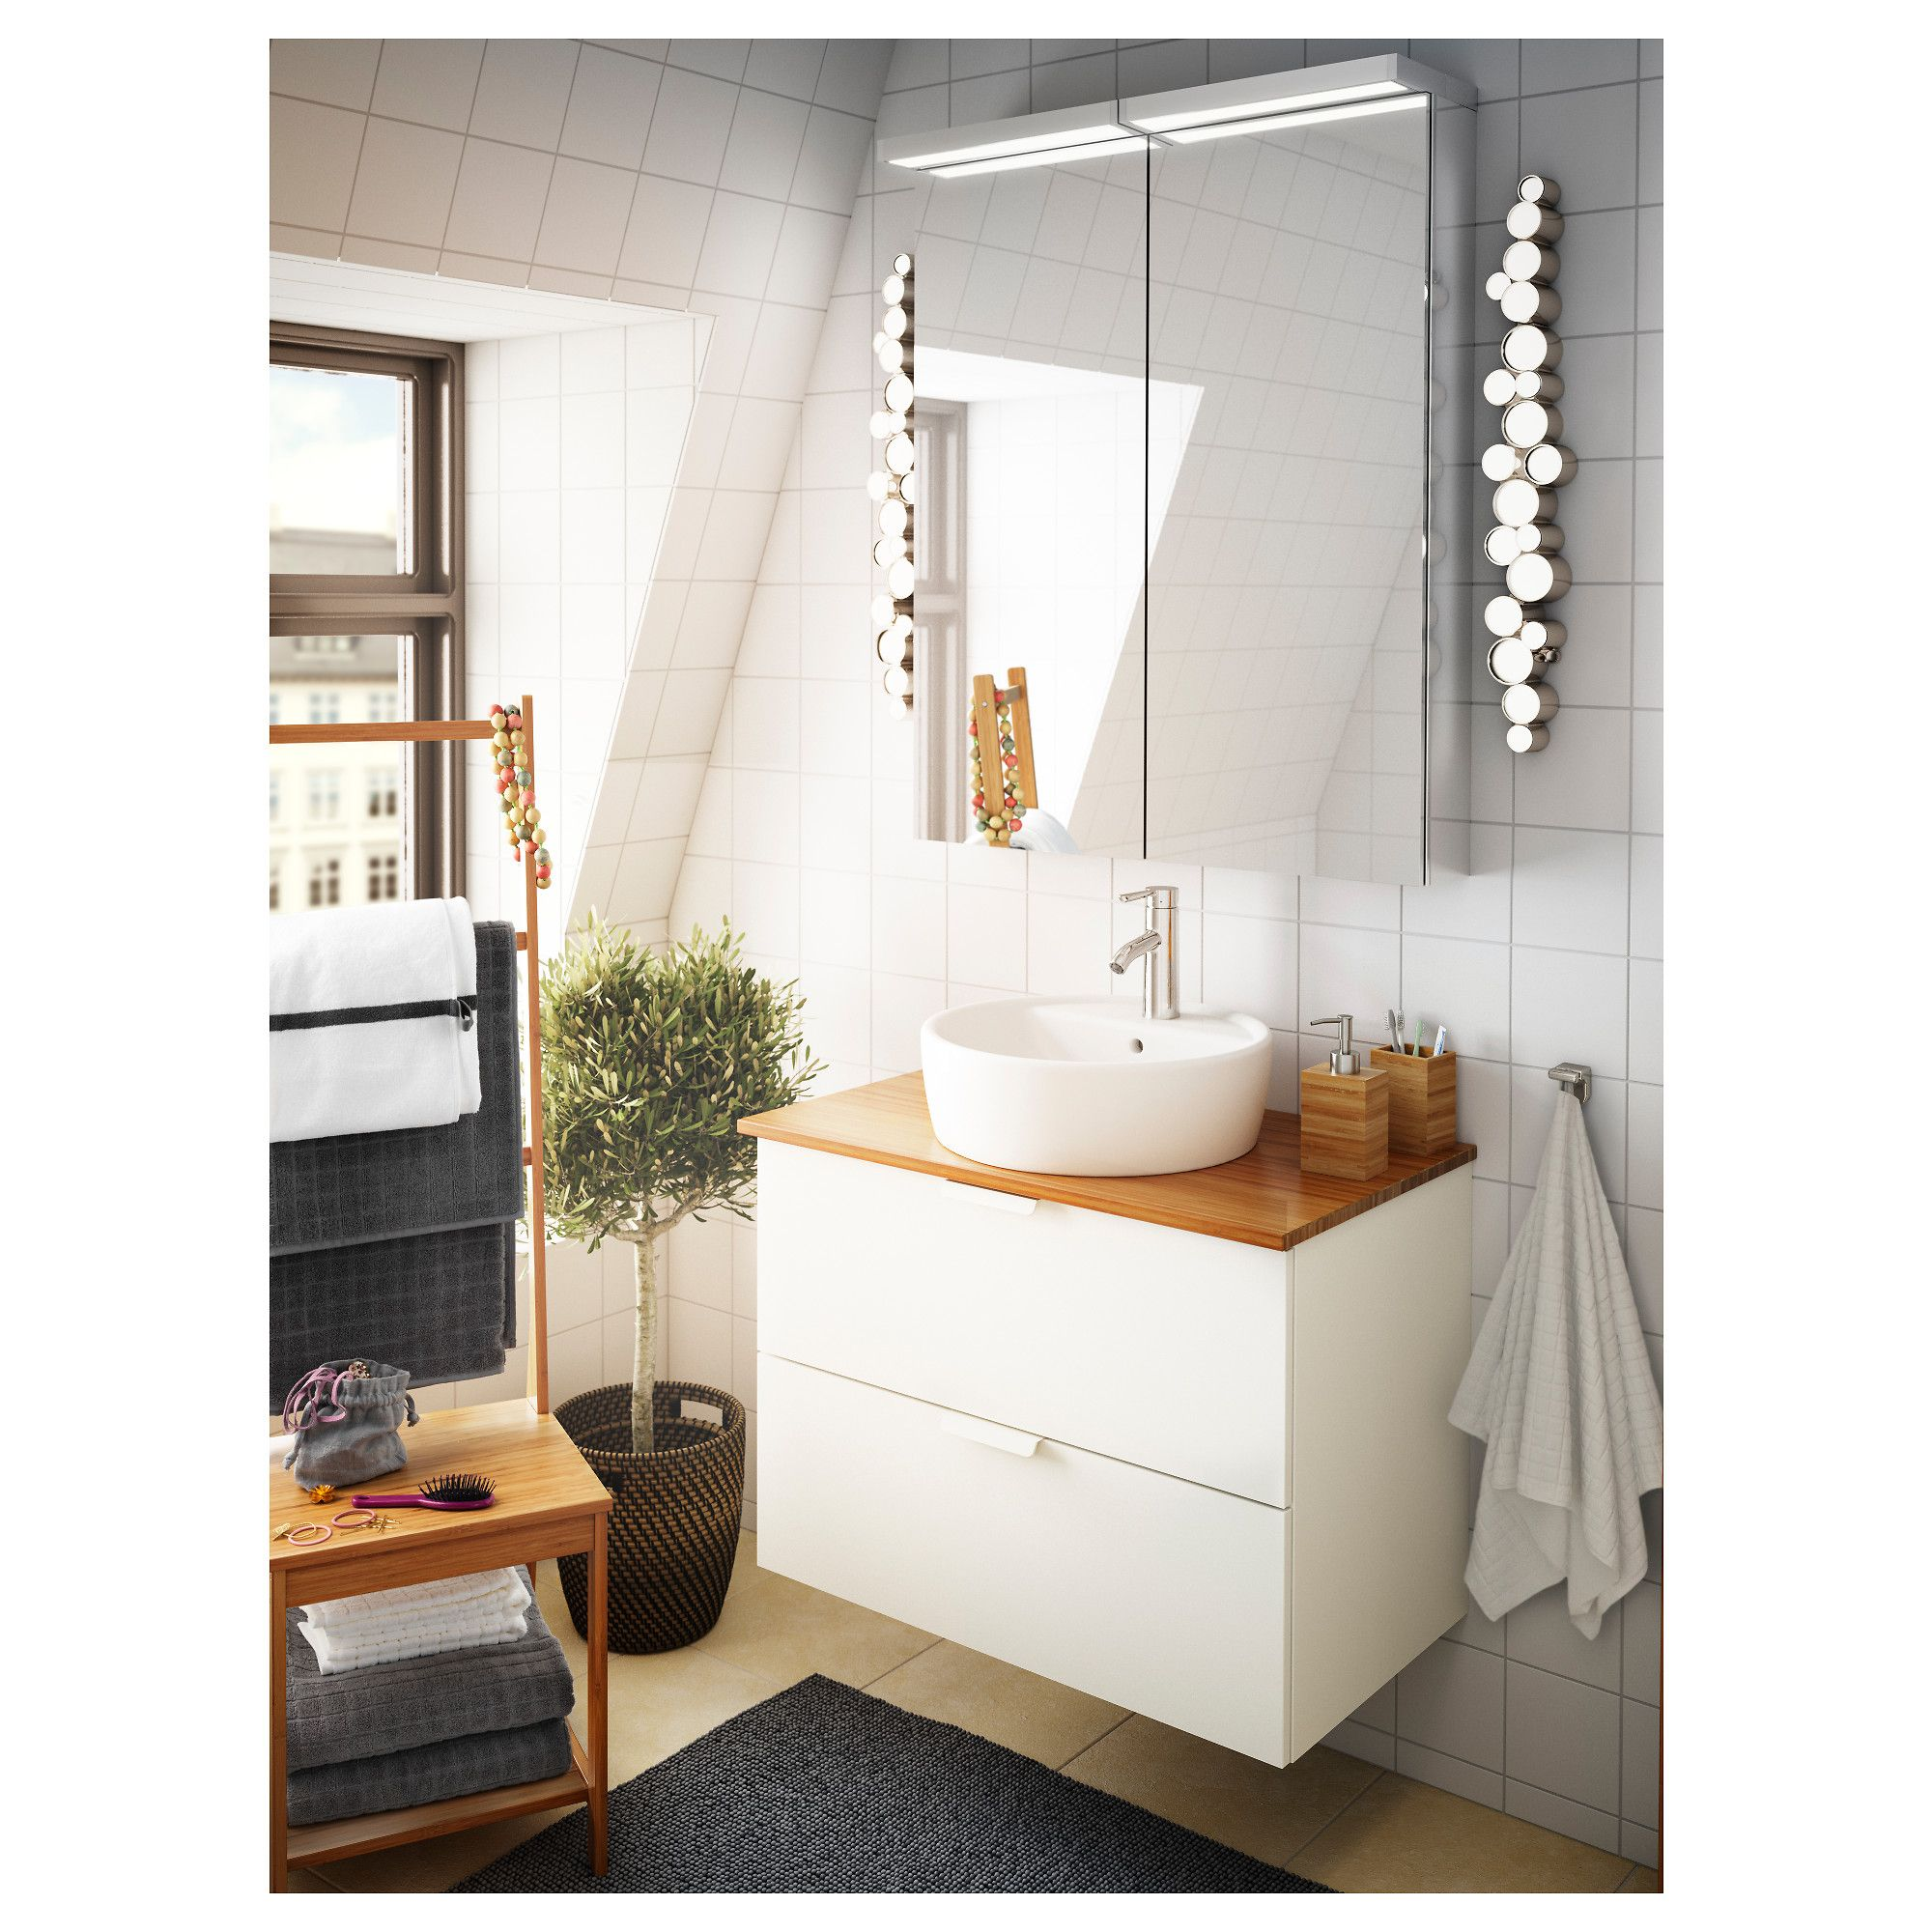 ikea tolken countertop bamboo in 2019 products. Black Bedroom Furniture Sets. Home Design Ideas